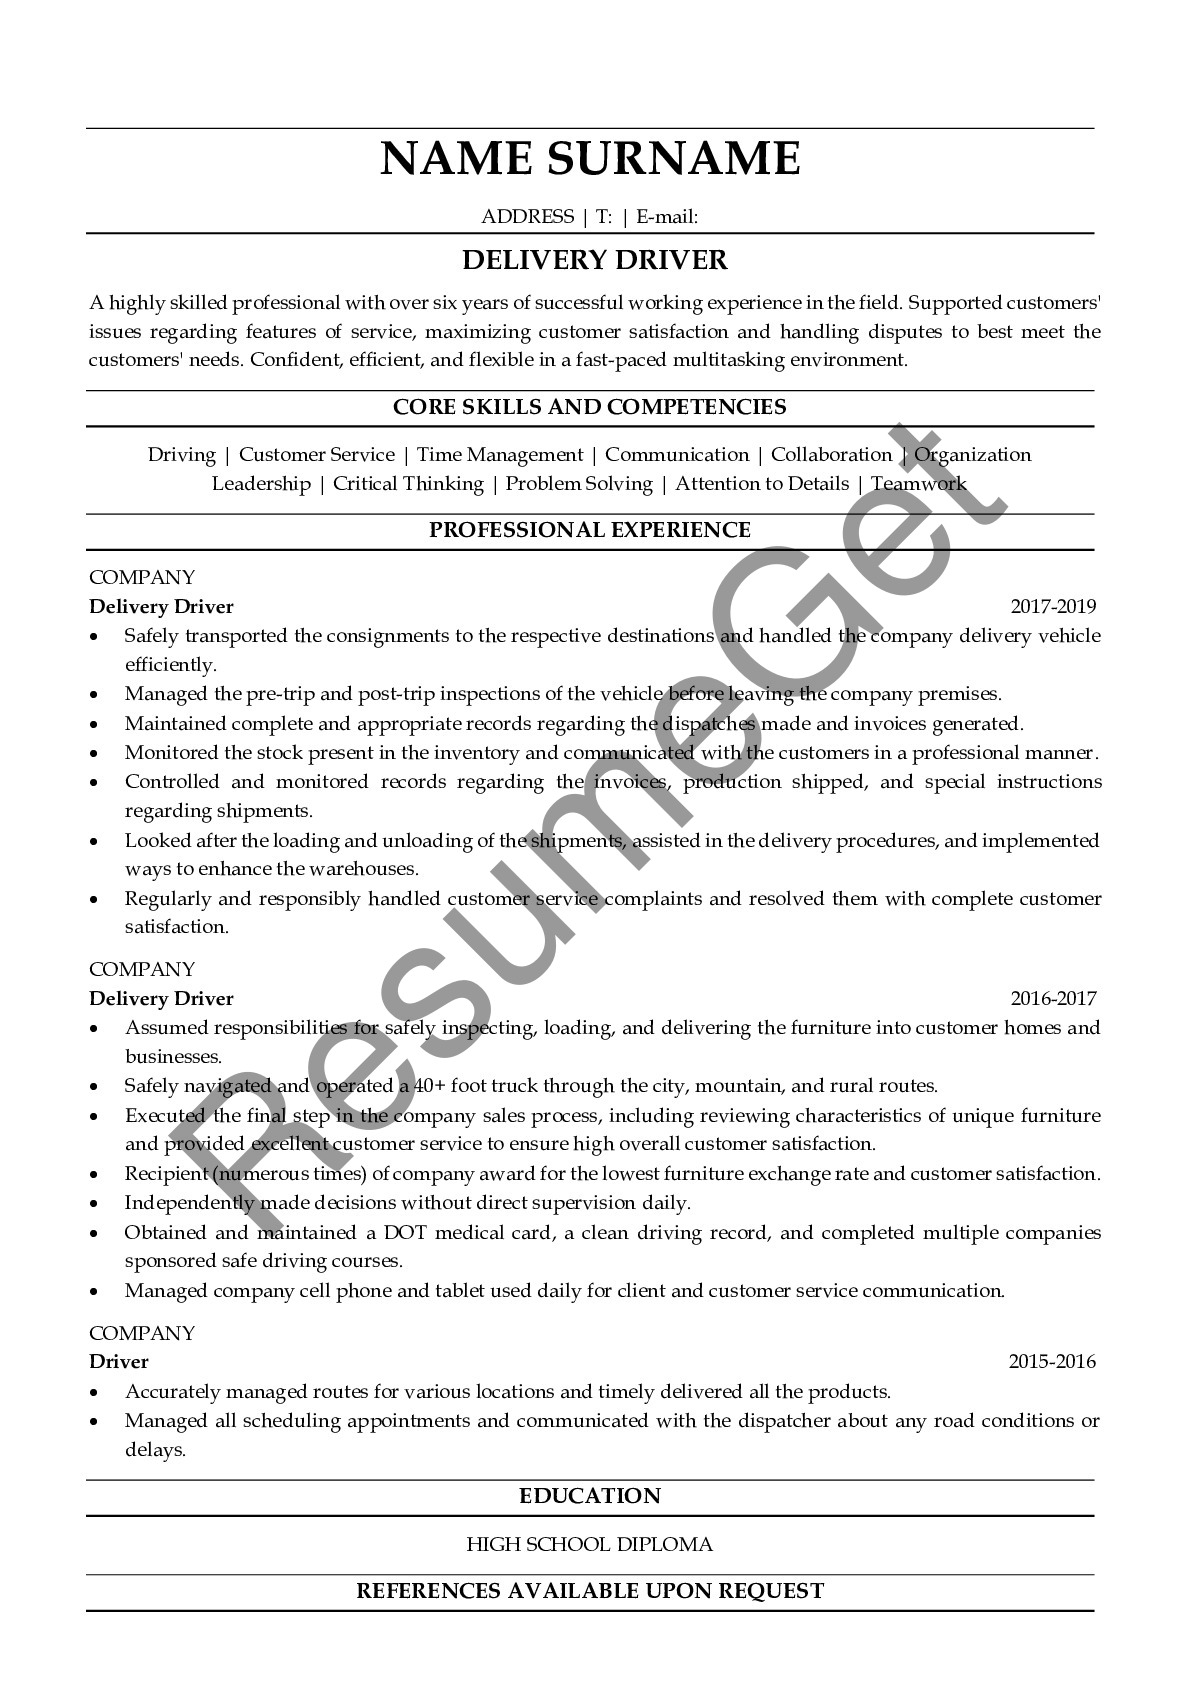 delivery driver resume examples resumeget skills for business accounting medical front Resume Delivery Driver Skills For Resume